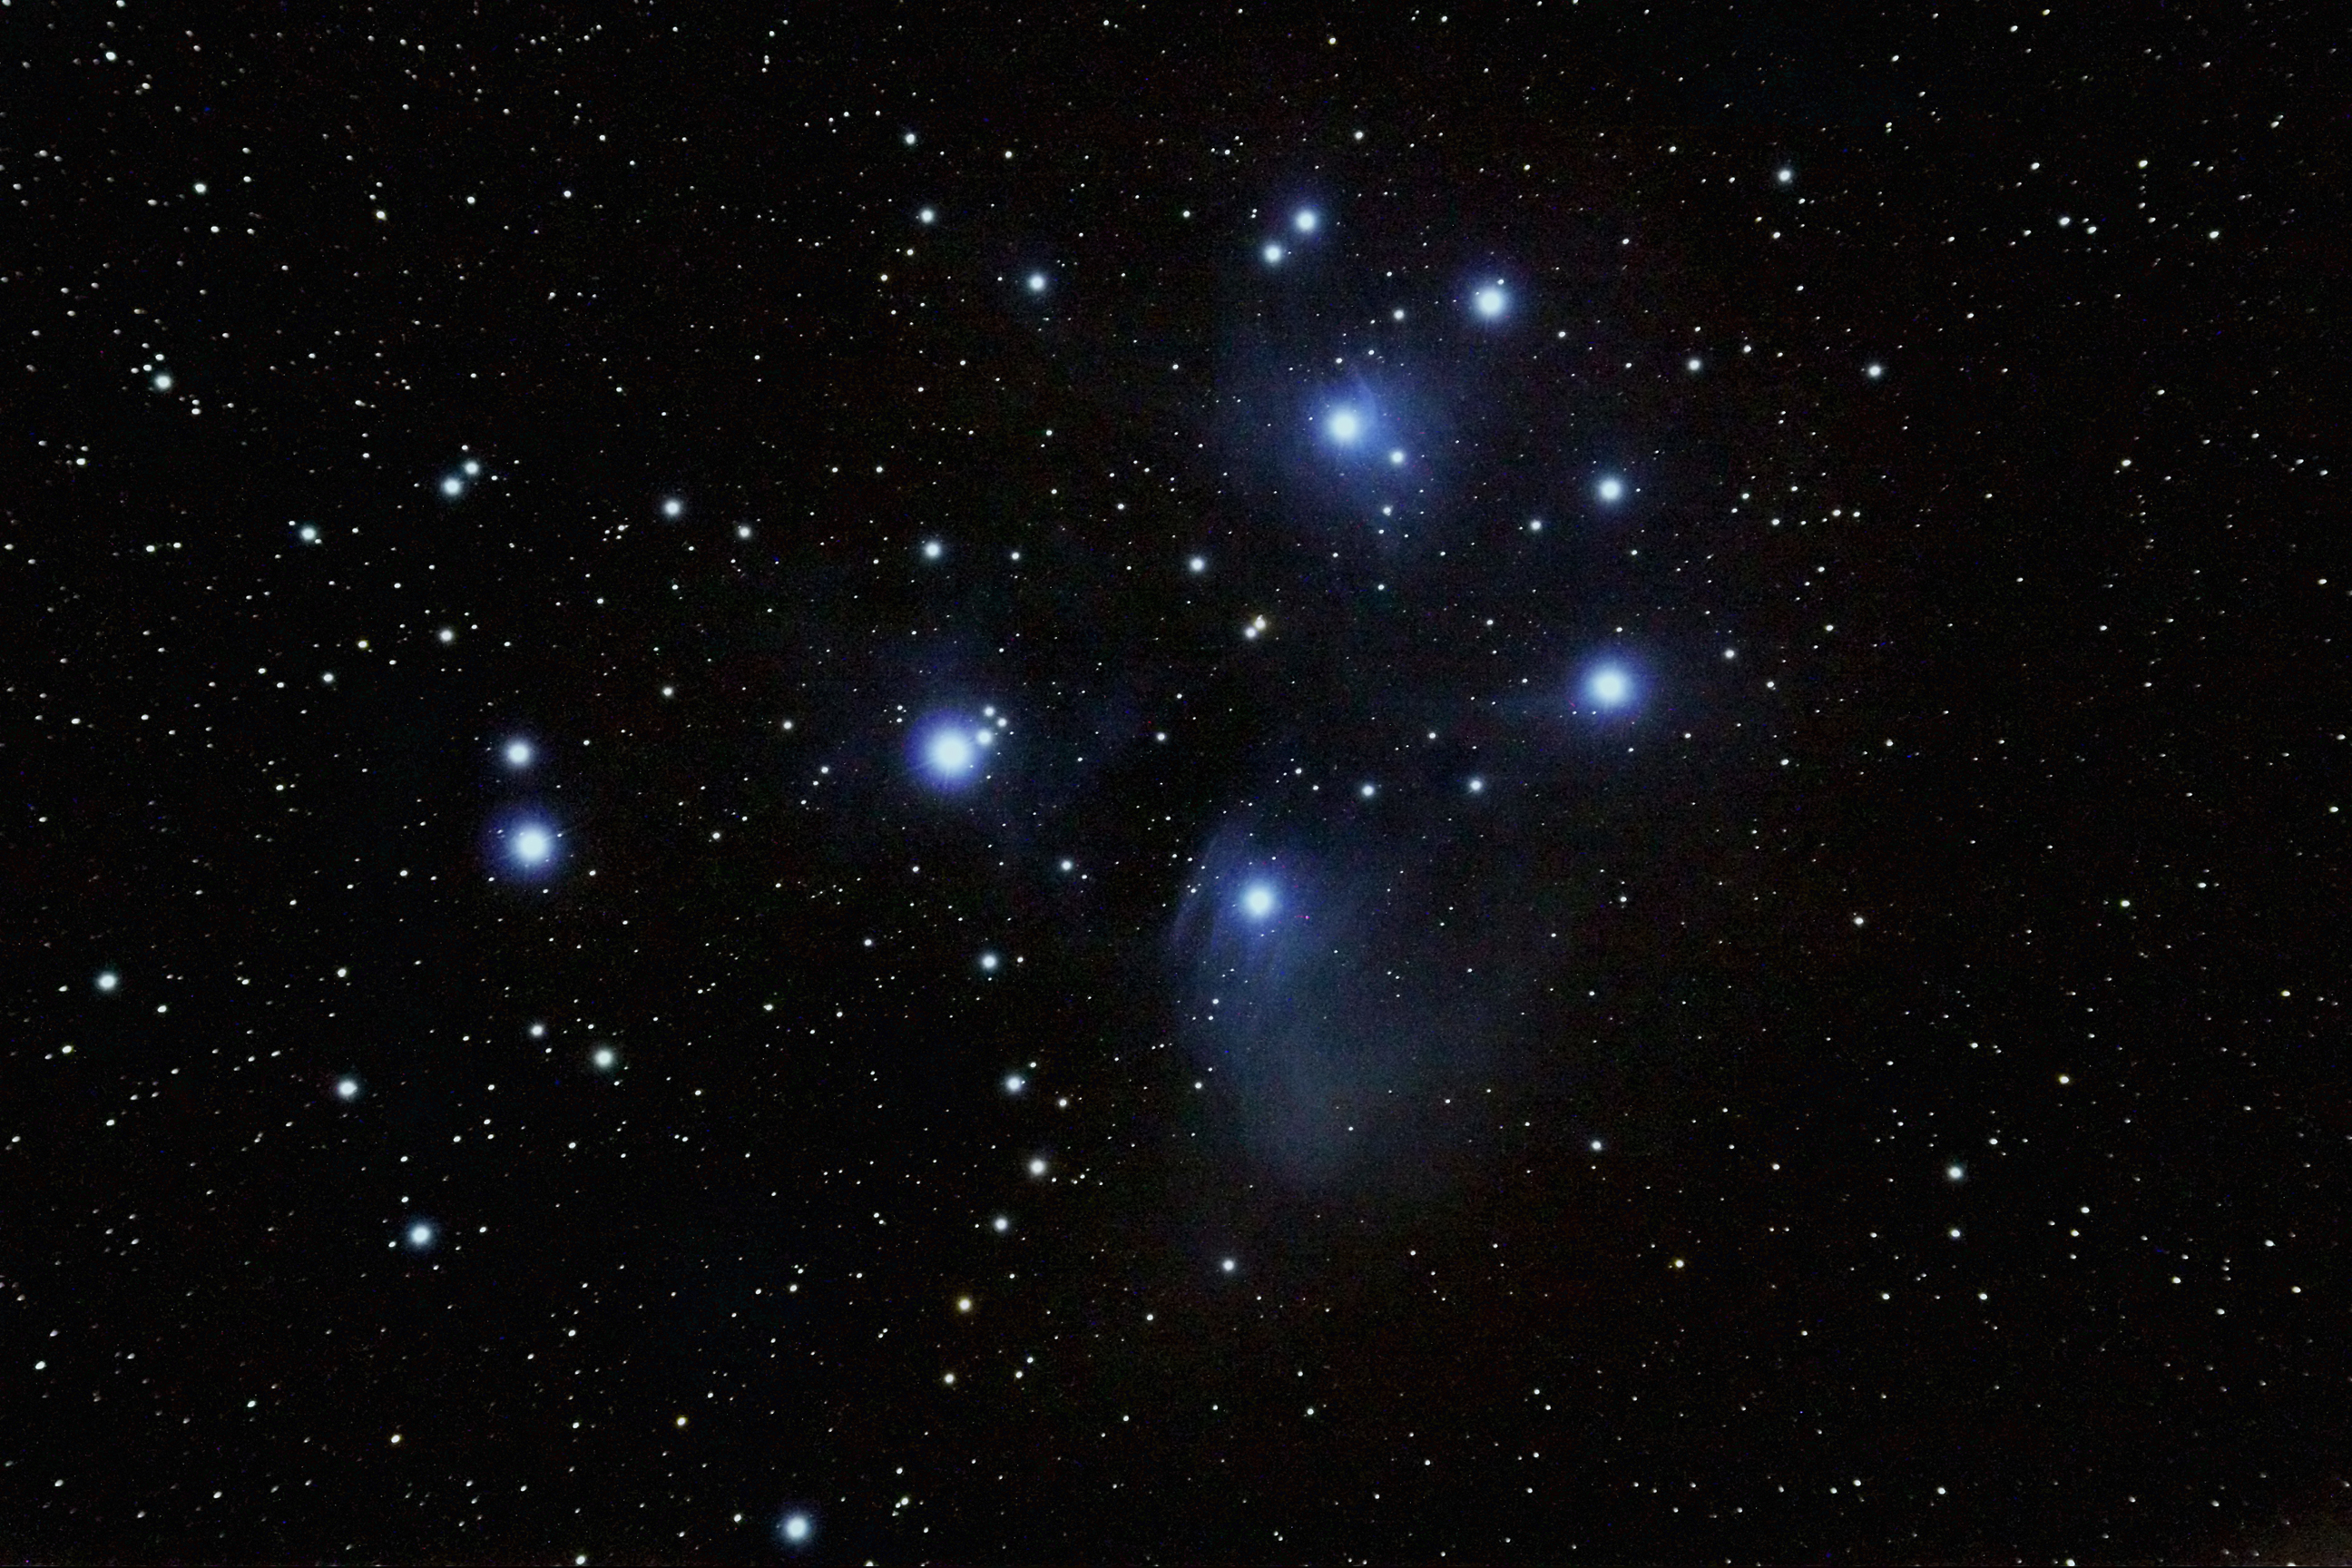 orion star cluster - photo #38